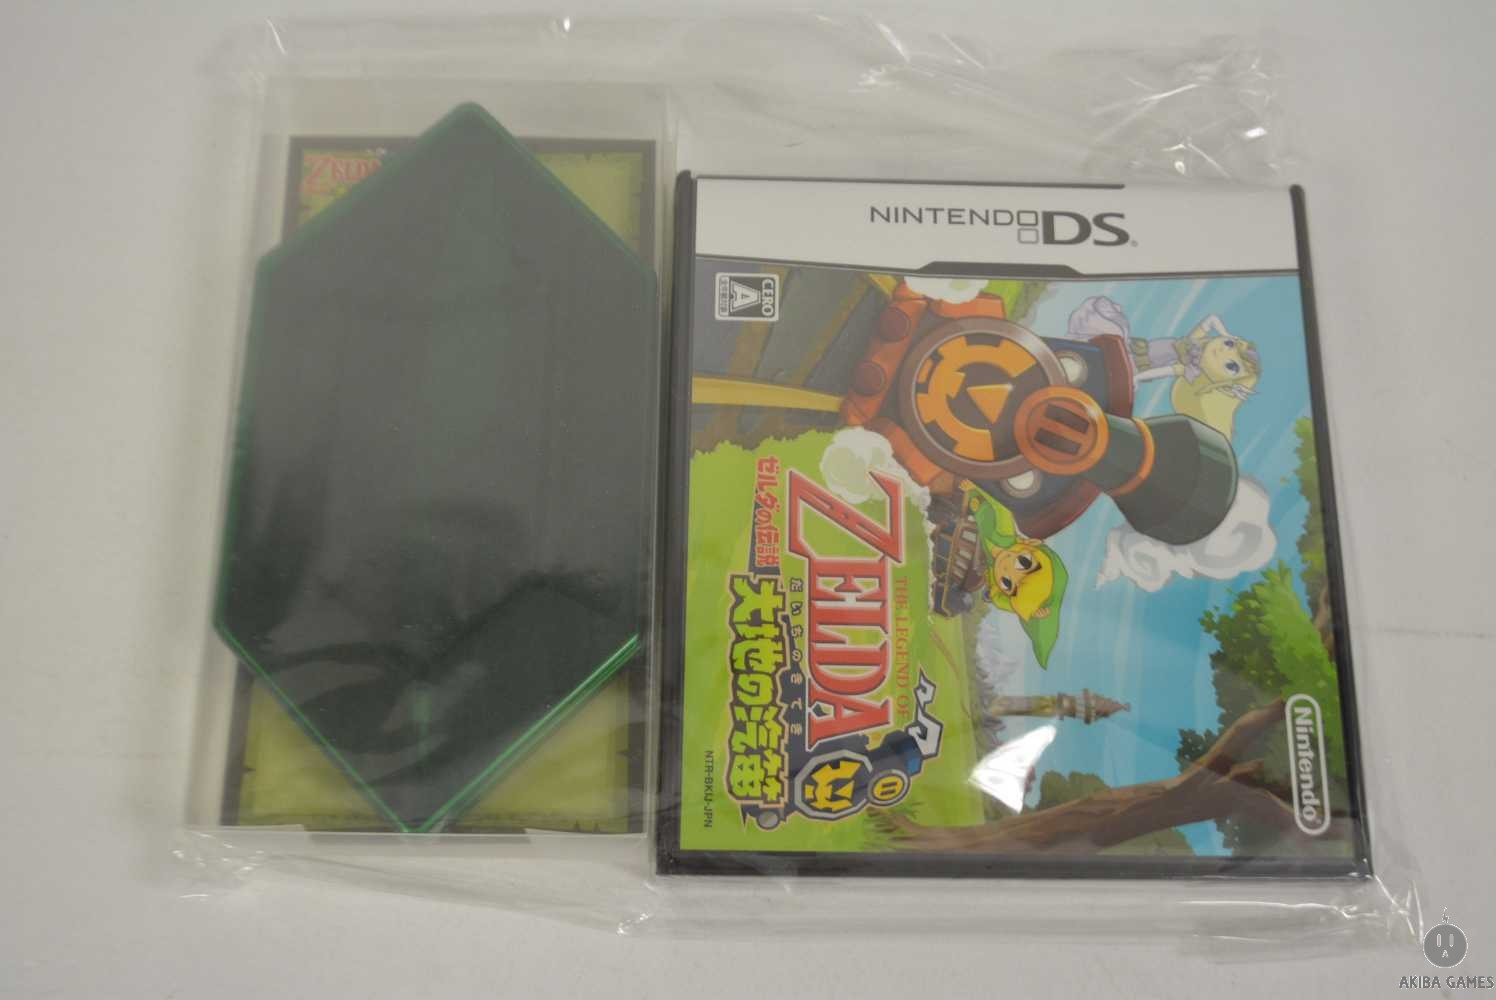 [DS] The Legend of Zelda Daichi no Kiteki (NEW) W/Original Touch Pen